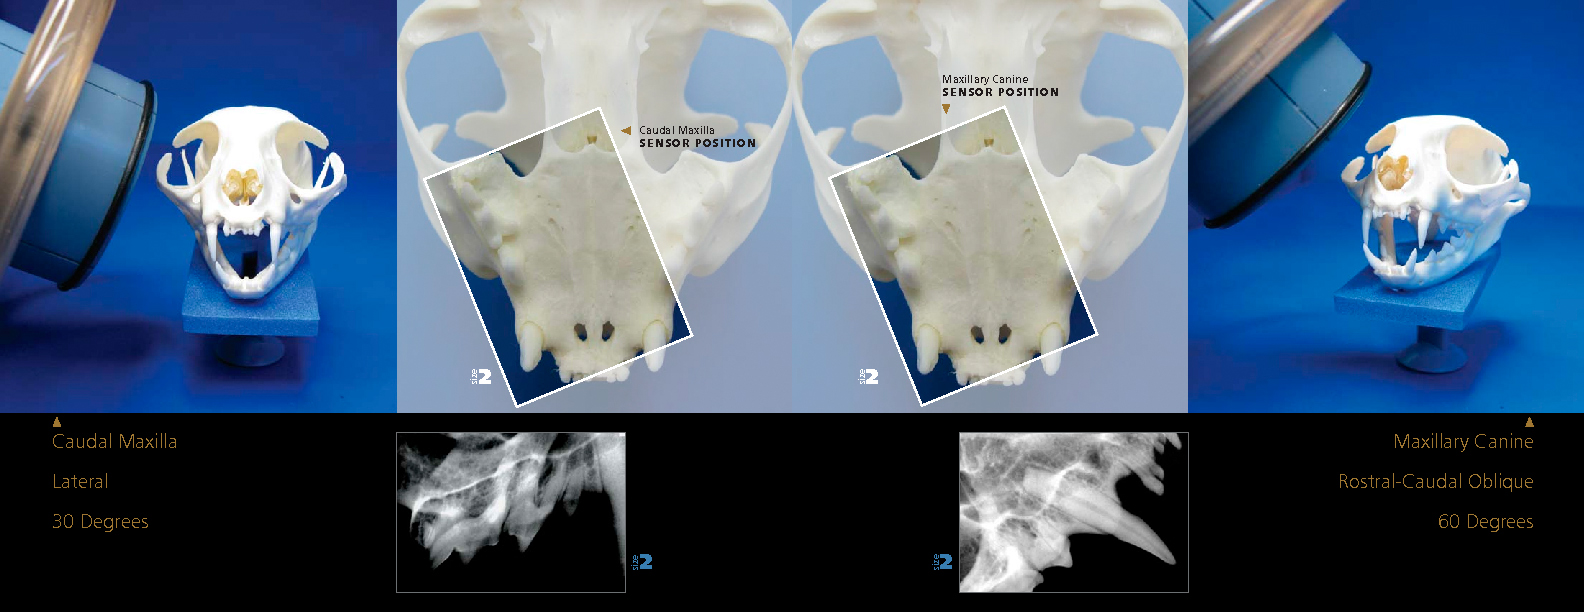 veterinary dentistry staff and client education image library rh veterinarydentistry net Radiography Positioning Aids Velpeau X-ray Positioning